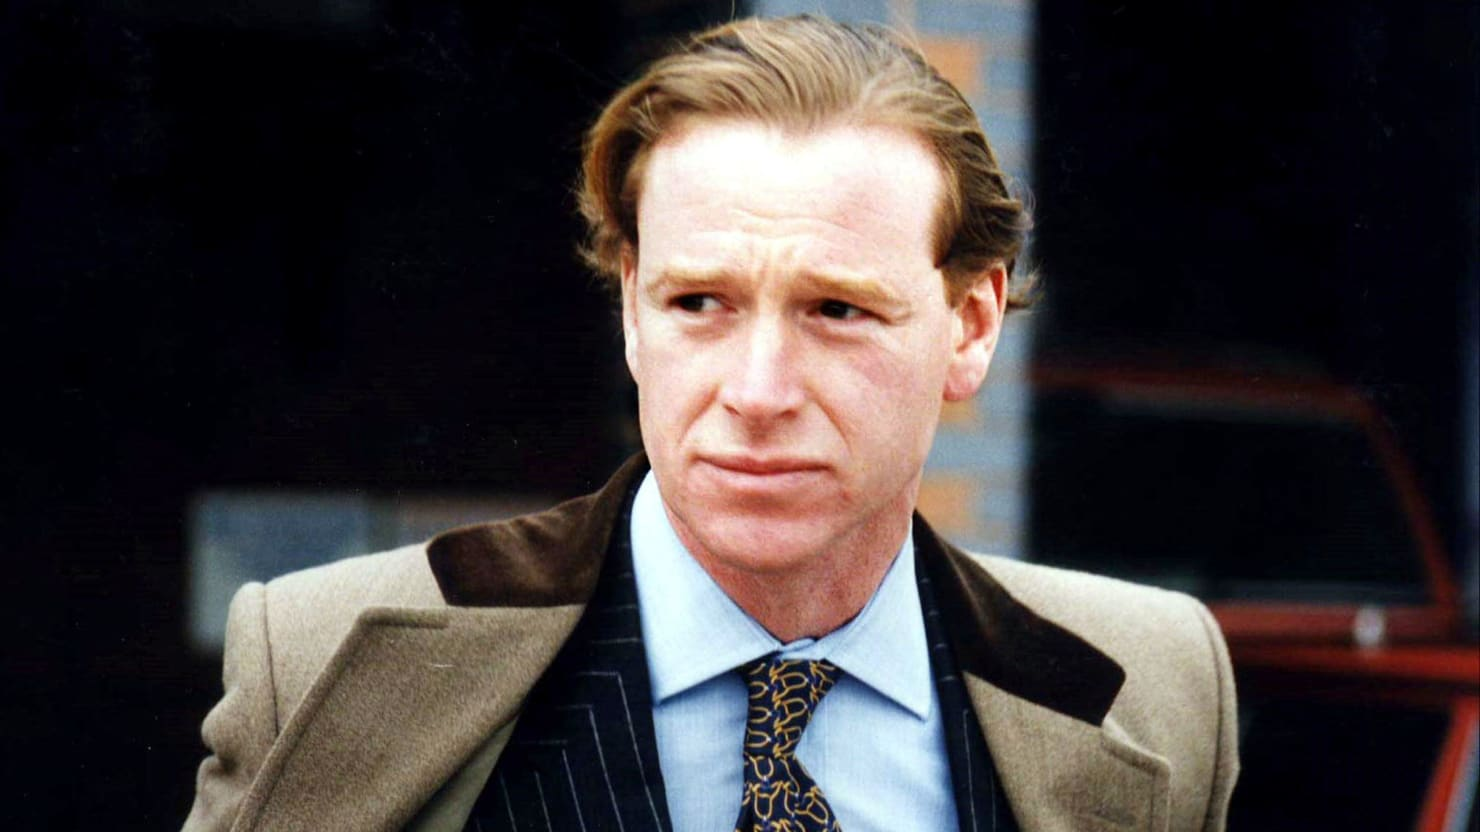 James Hewitt The Reviled Cad Who Sold Out Princess Diana And Has Long Been Suspected Of Being Prince Harry S Dad Is Seriously Ill In A Hospital